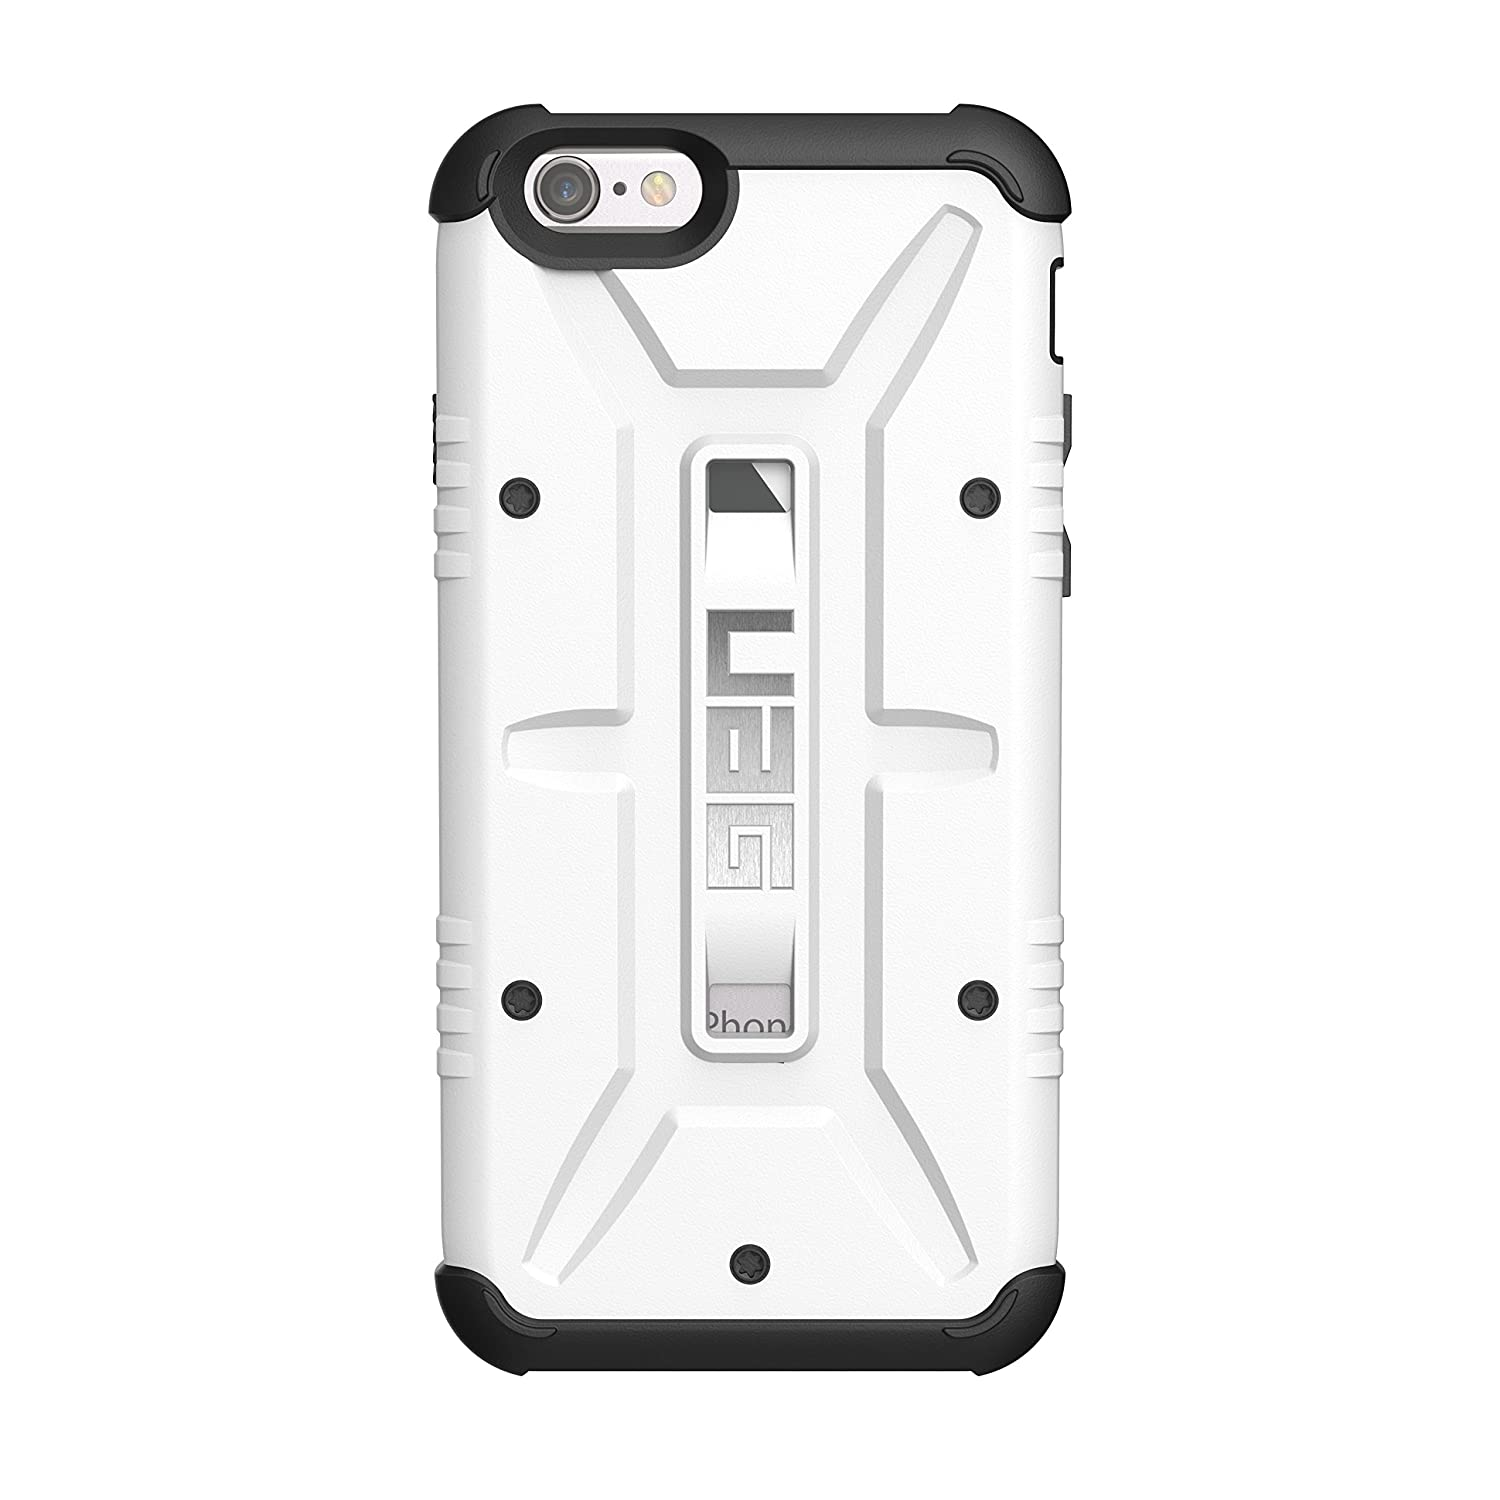 Galaxy s6 cases shop samsung cases online uag urban armor gear - Amazon Com Uag Iphone 6 Iphone 6s 4 7 Inch Screen Feather Light Composite White Military Drop Tested Phone Case Home Improvement